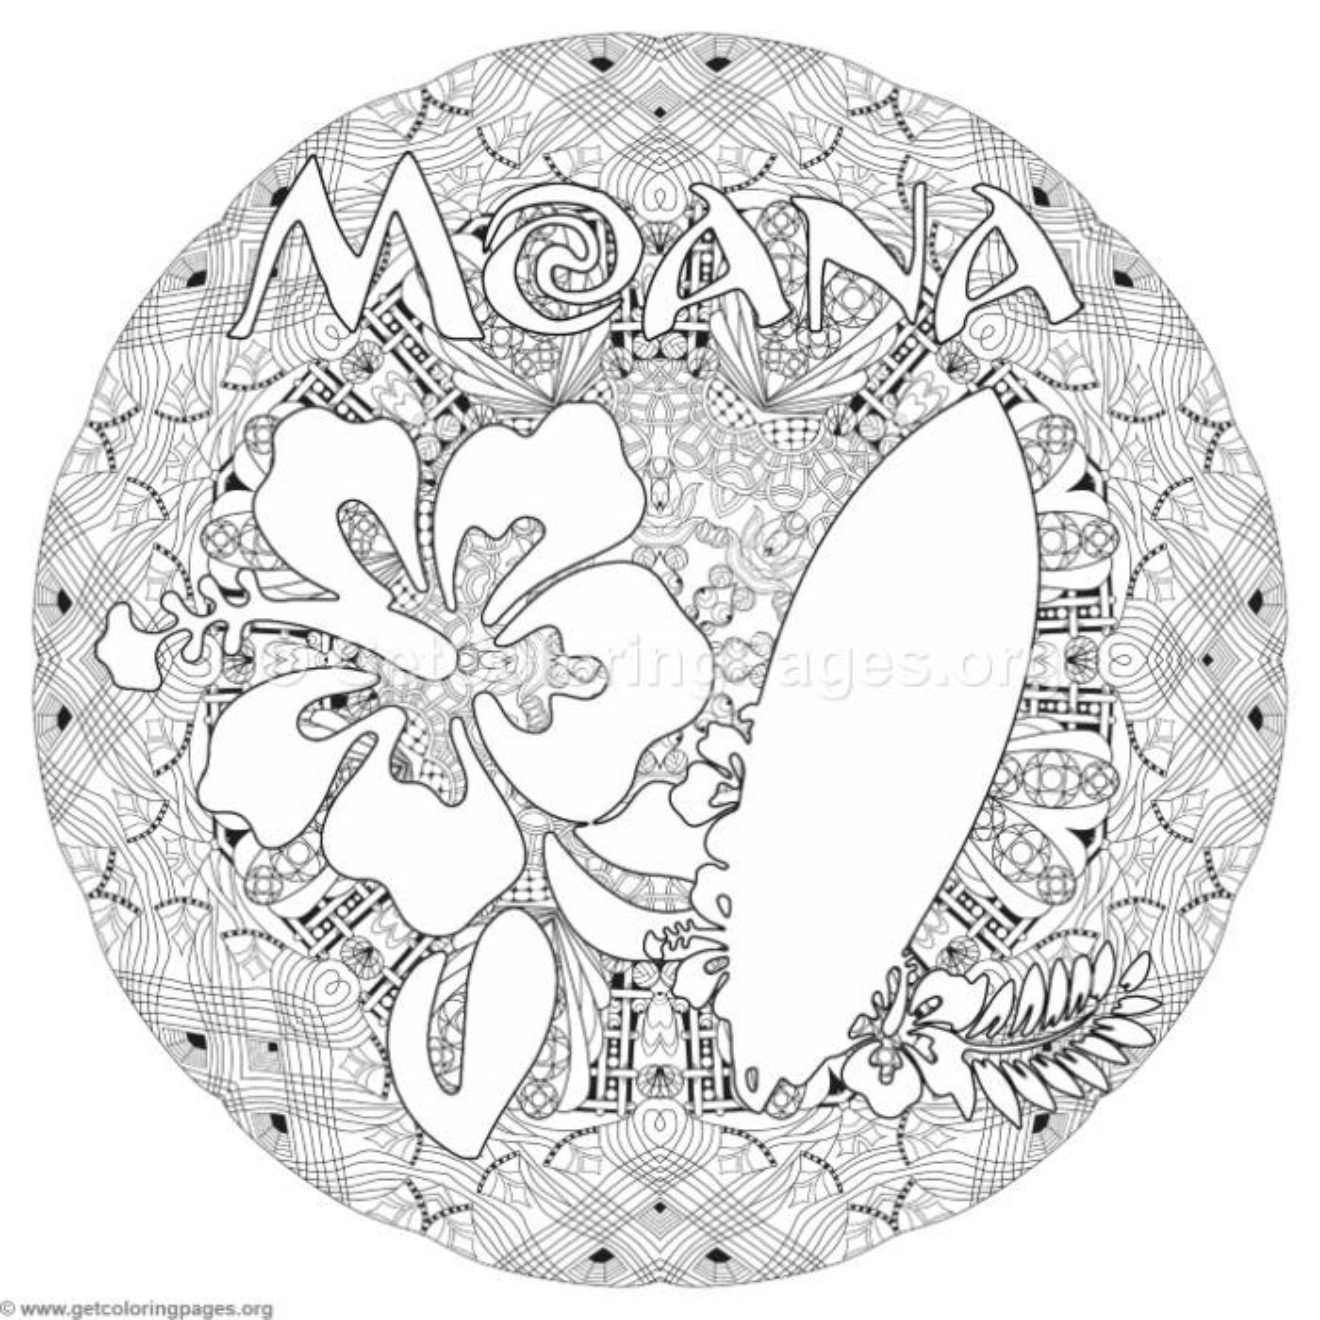 Moana Flower And Surfboard Coloring Pages Getcoloringpages Org Coloring Pages Moana Coloring Pages Flower Drawing